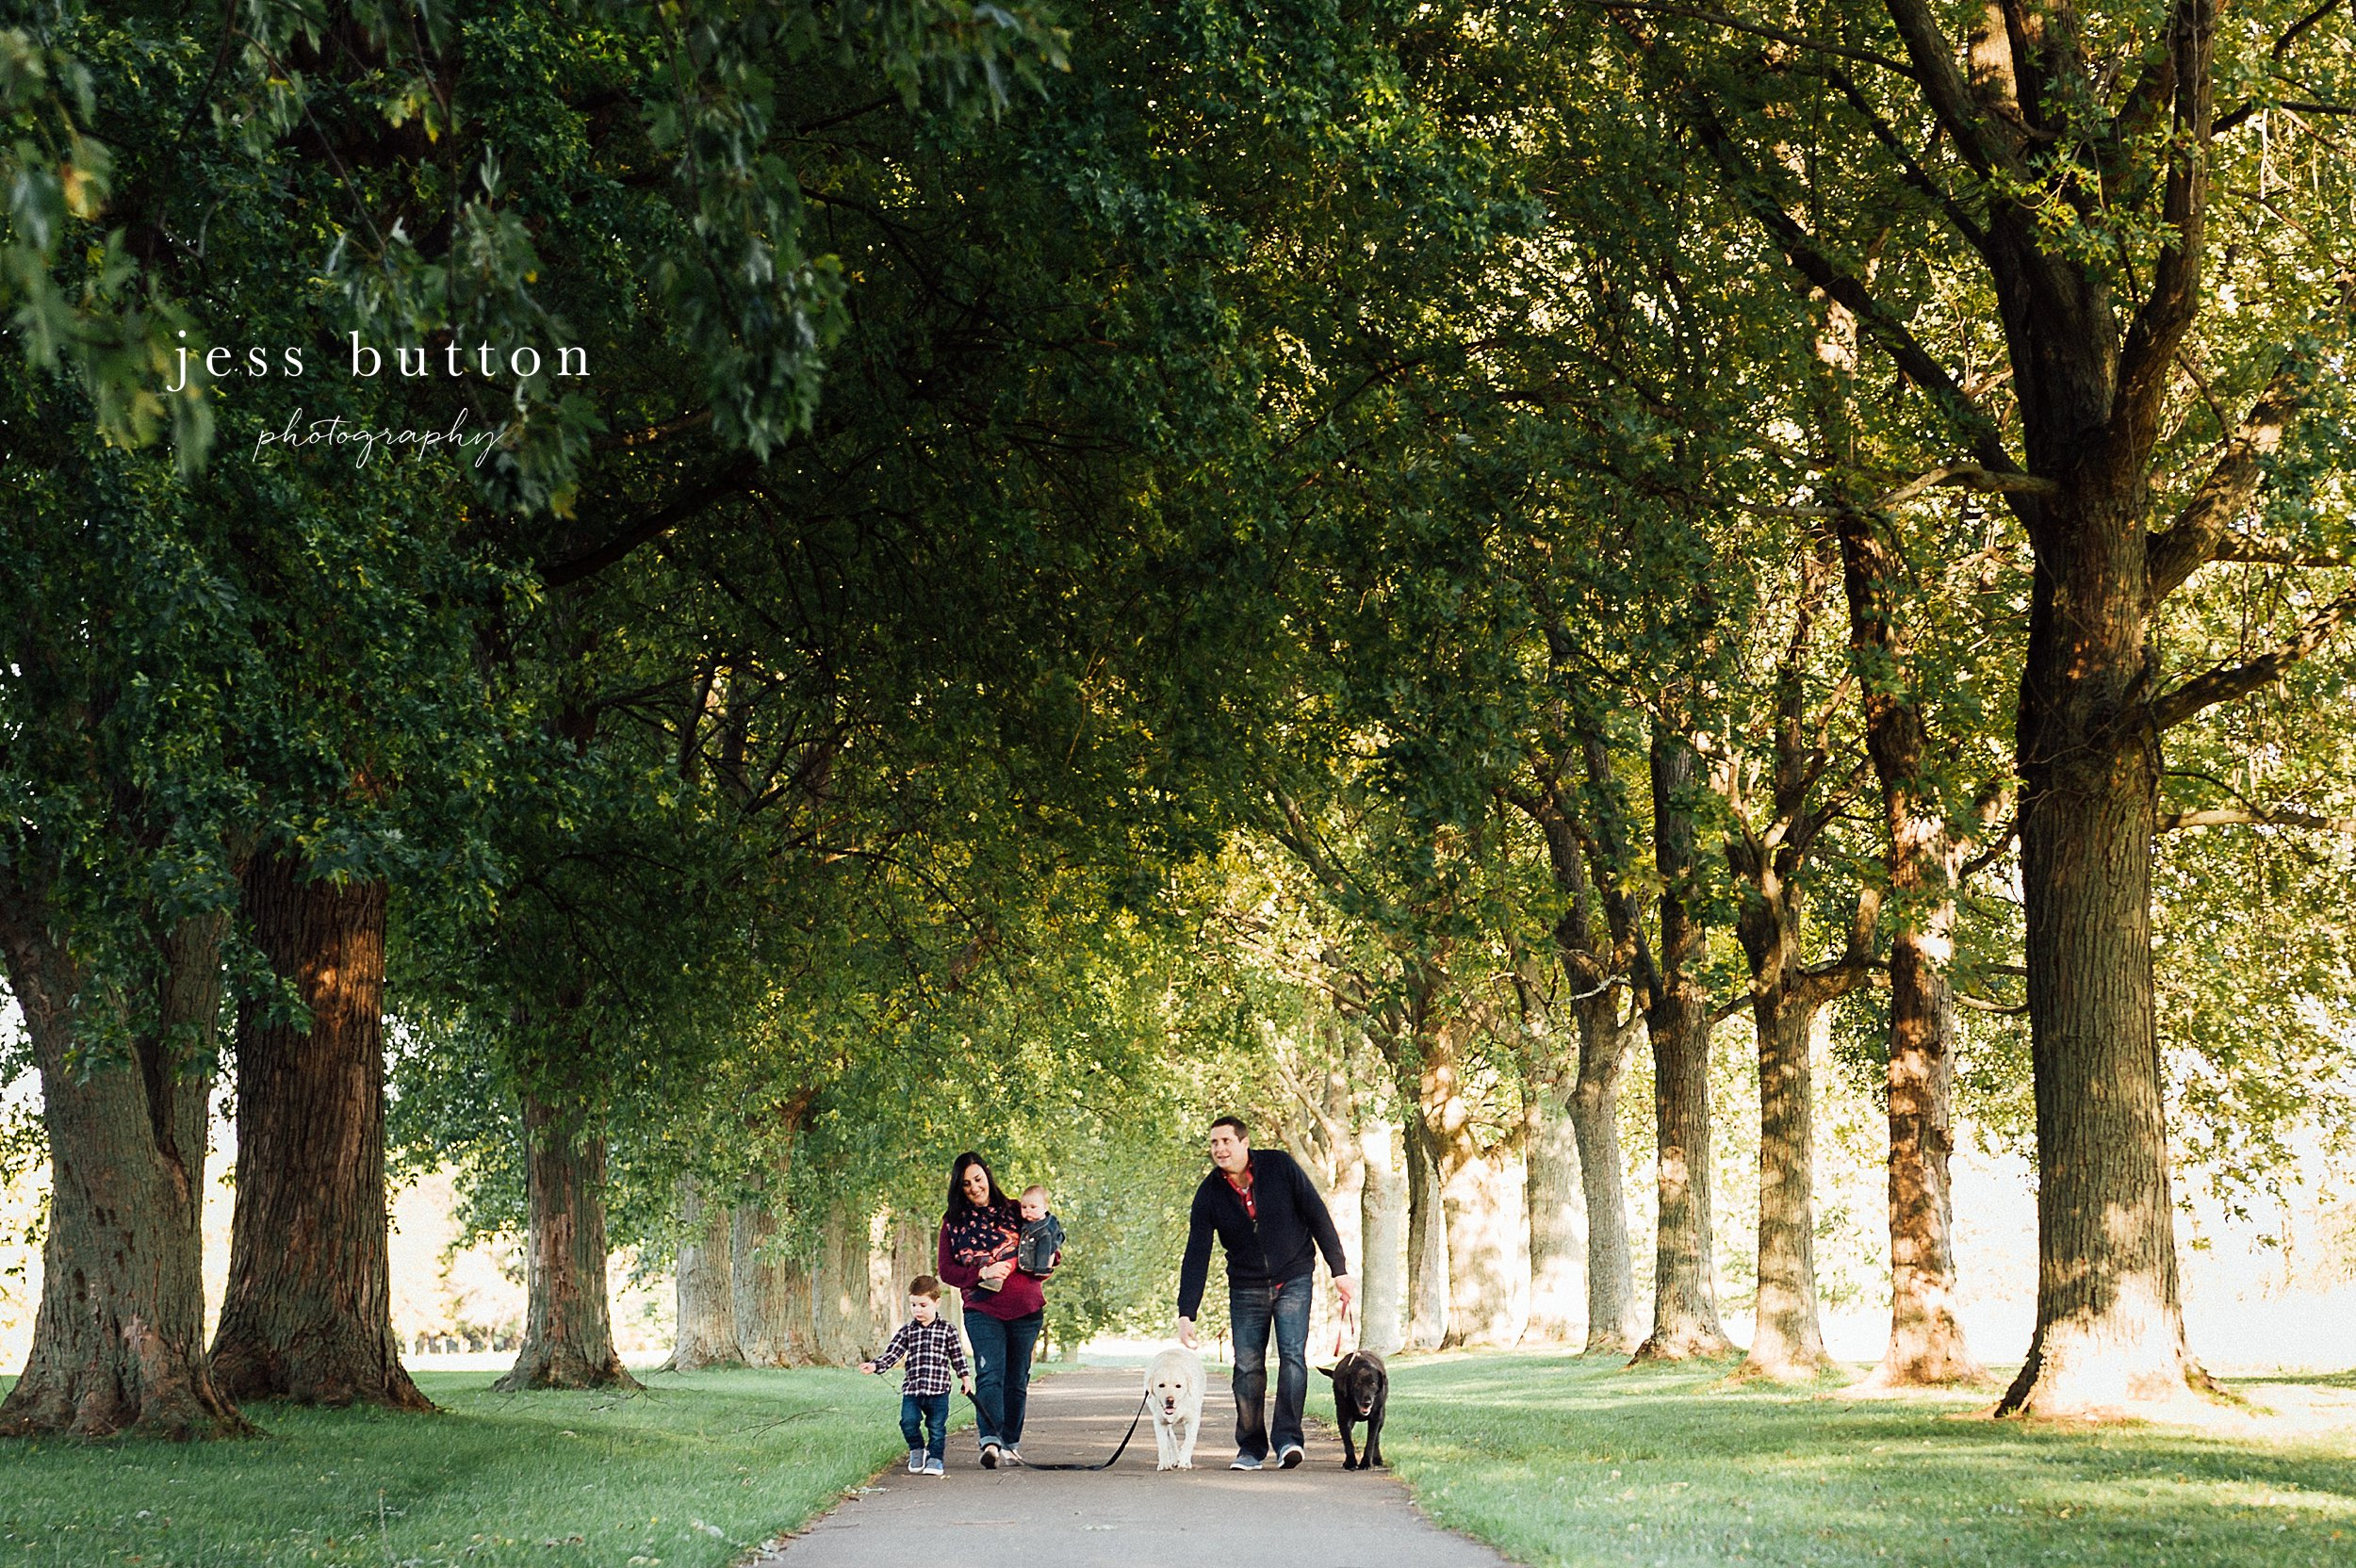 Niagara Family Photographer - Fall family portraits Niagara-on-the-Lake - mom, dad, boy, girl and dogs walking together on tree lined path